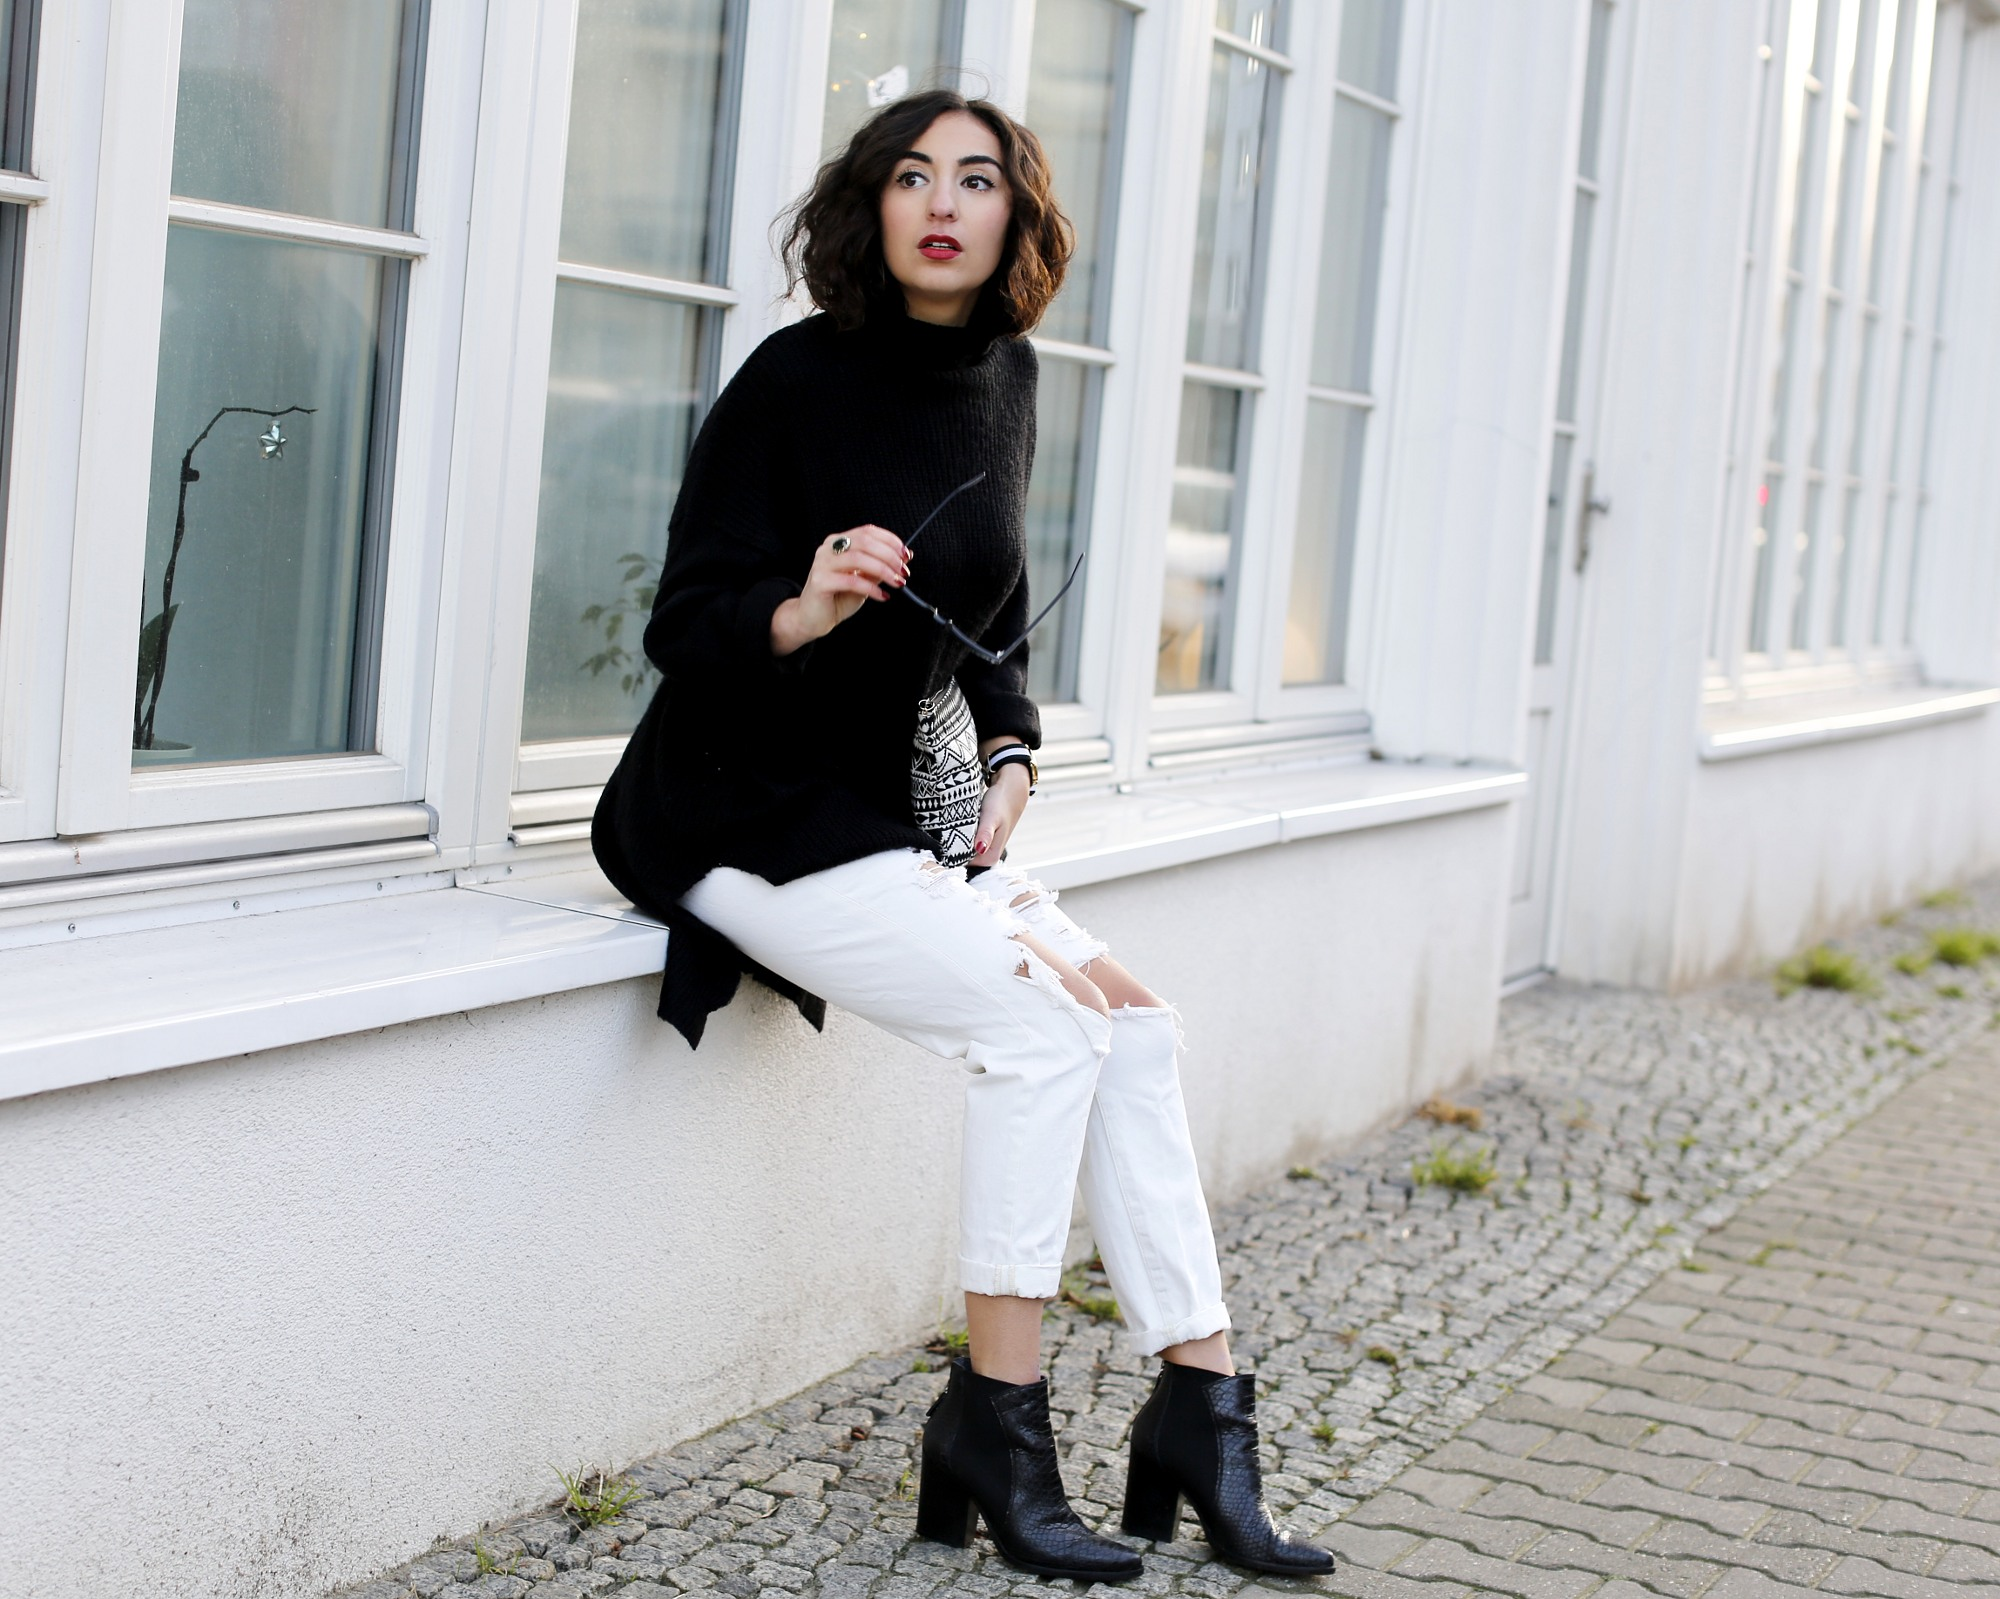 Ripped Boyfriend Jeans details quer ripped boyfriend jeans white loose jeans black oversize turtleneck sweater winter streetstyle outfit blog samieze winter outfit modeblog streetstyle